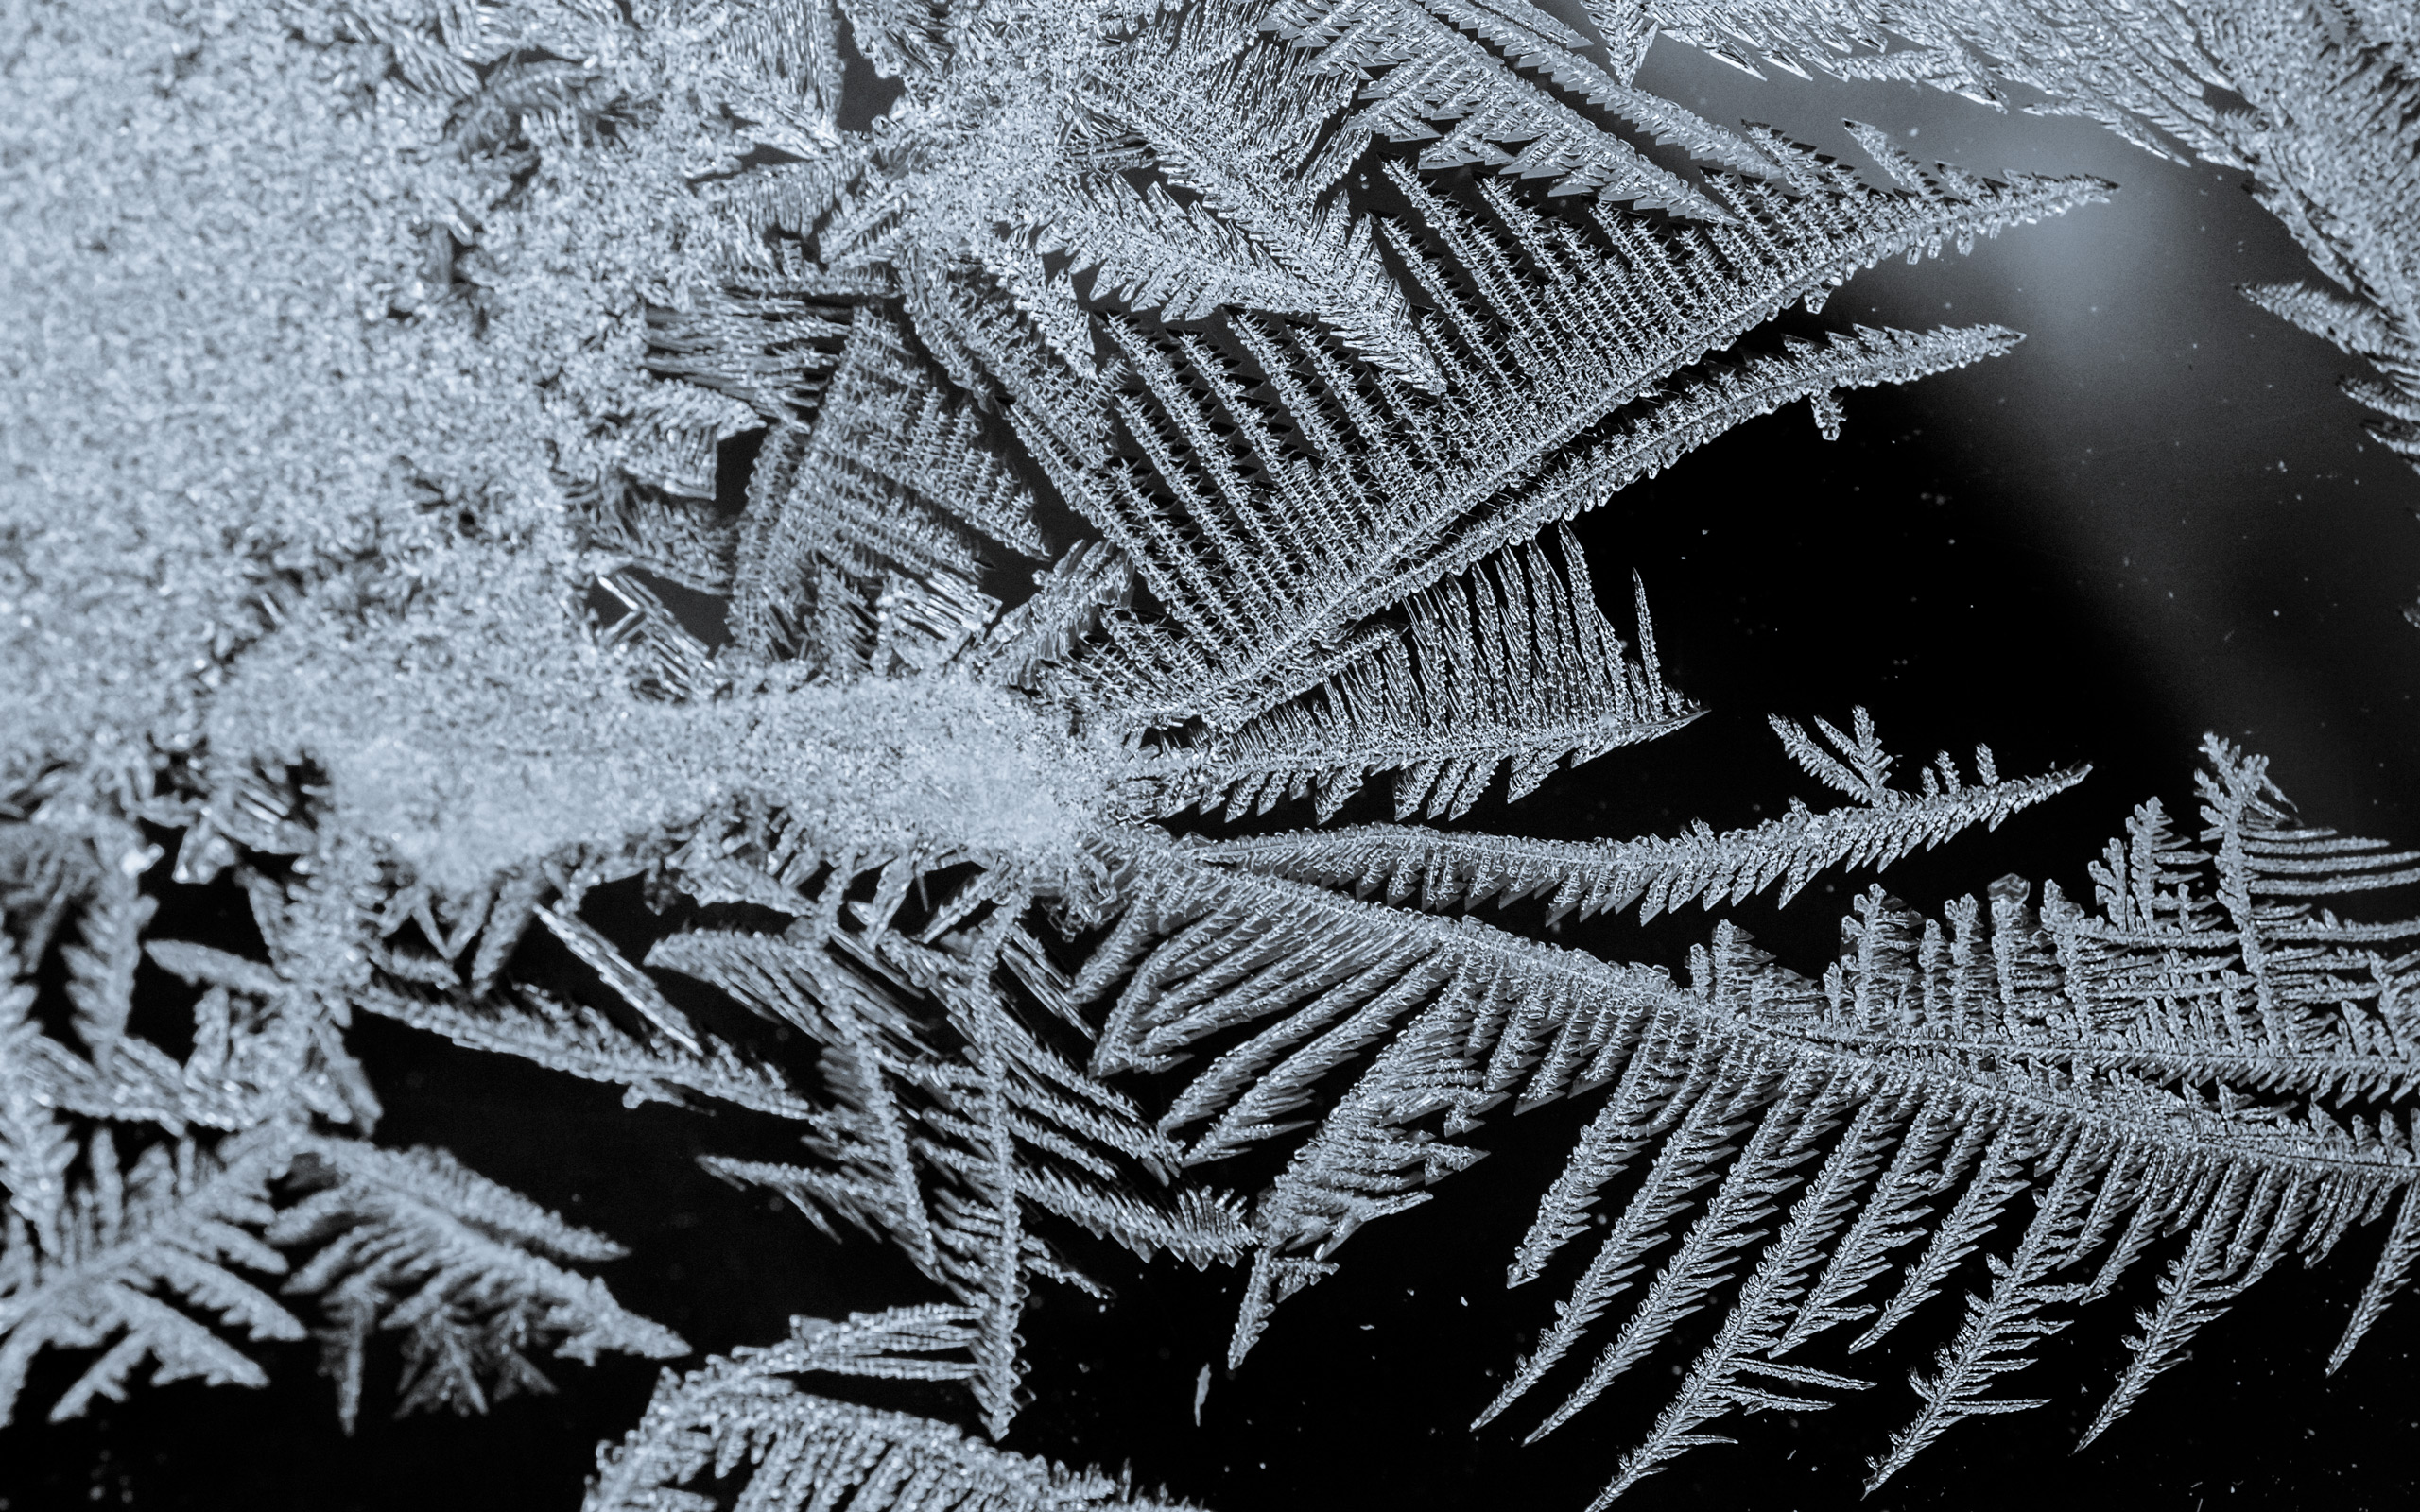 Jeffrey Friedl S Blog 187 More Frost Patterns From Arctic Ohio